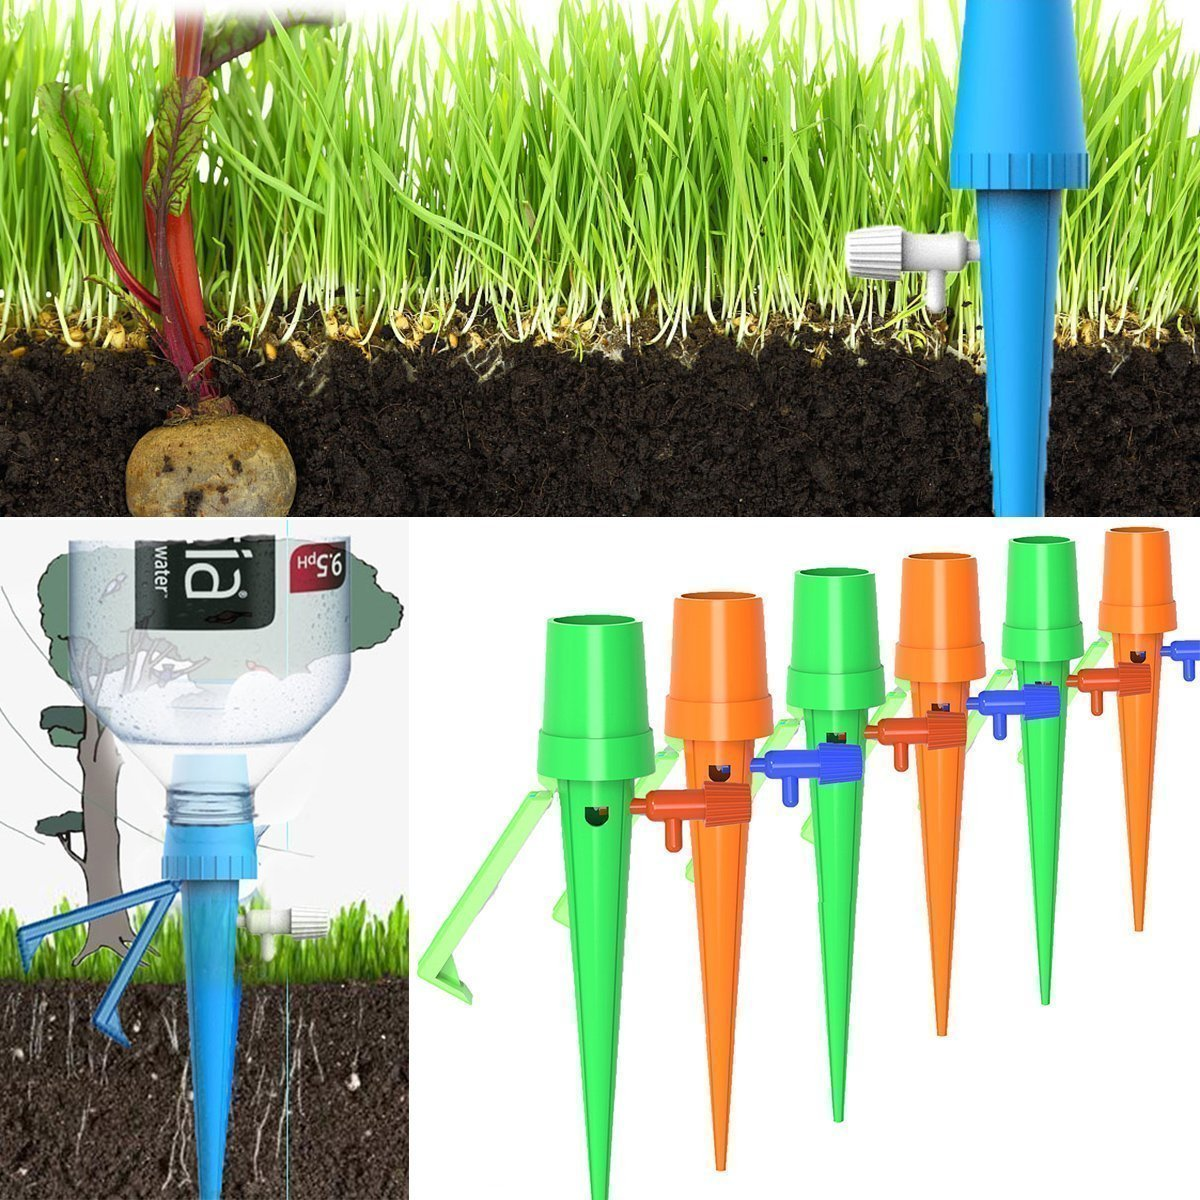 AUTOMATIC IRRIGATION CONTROL SYSTEM